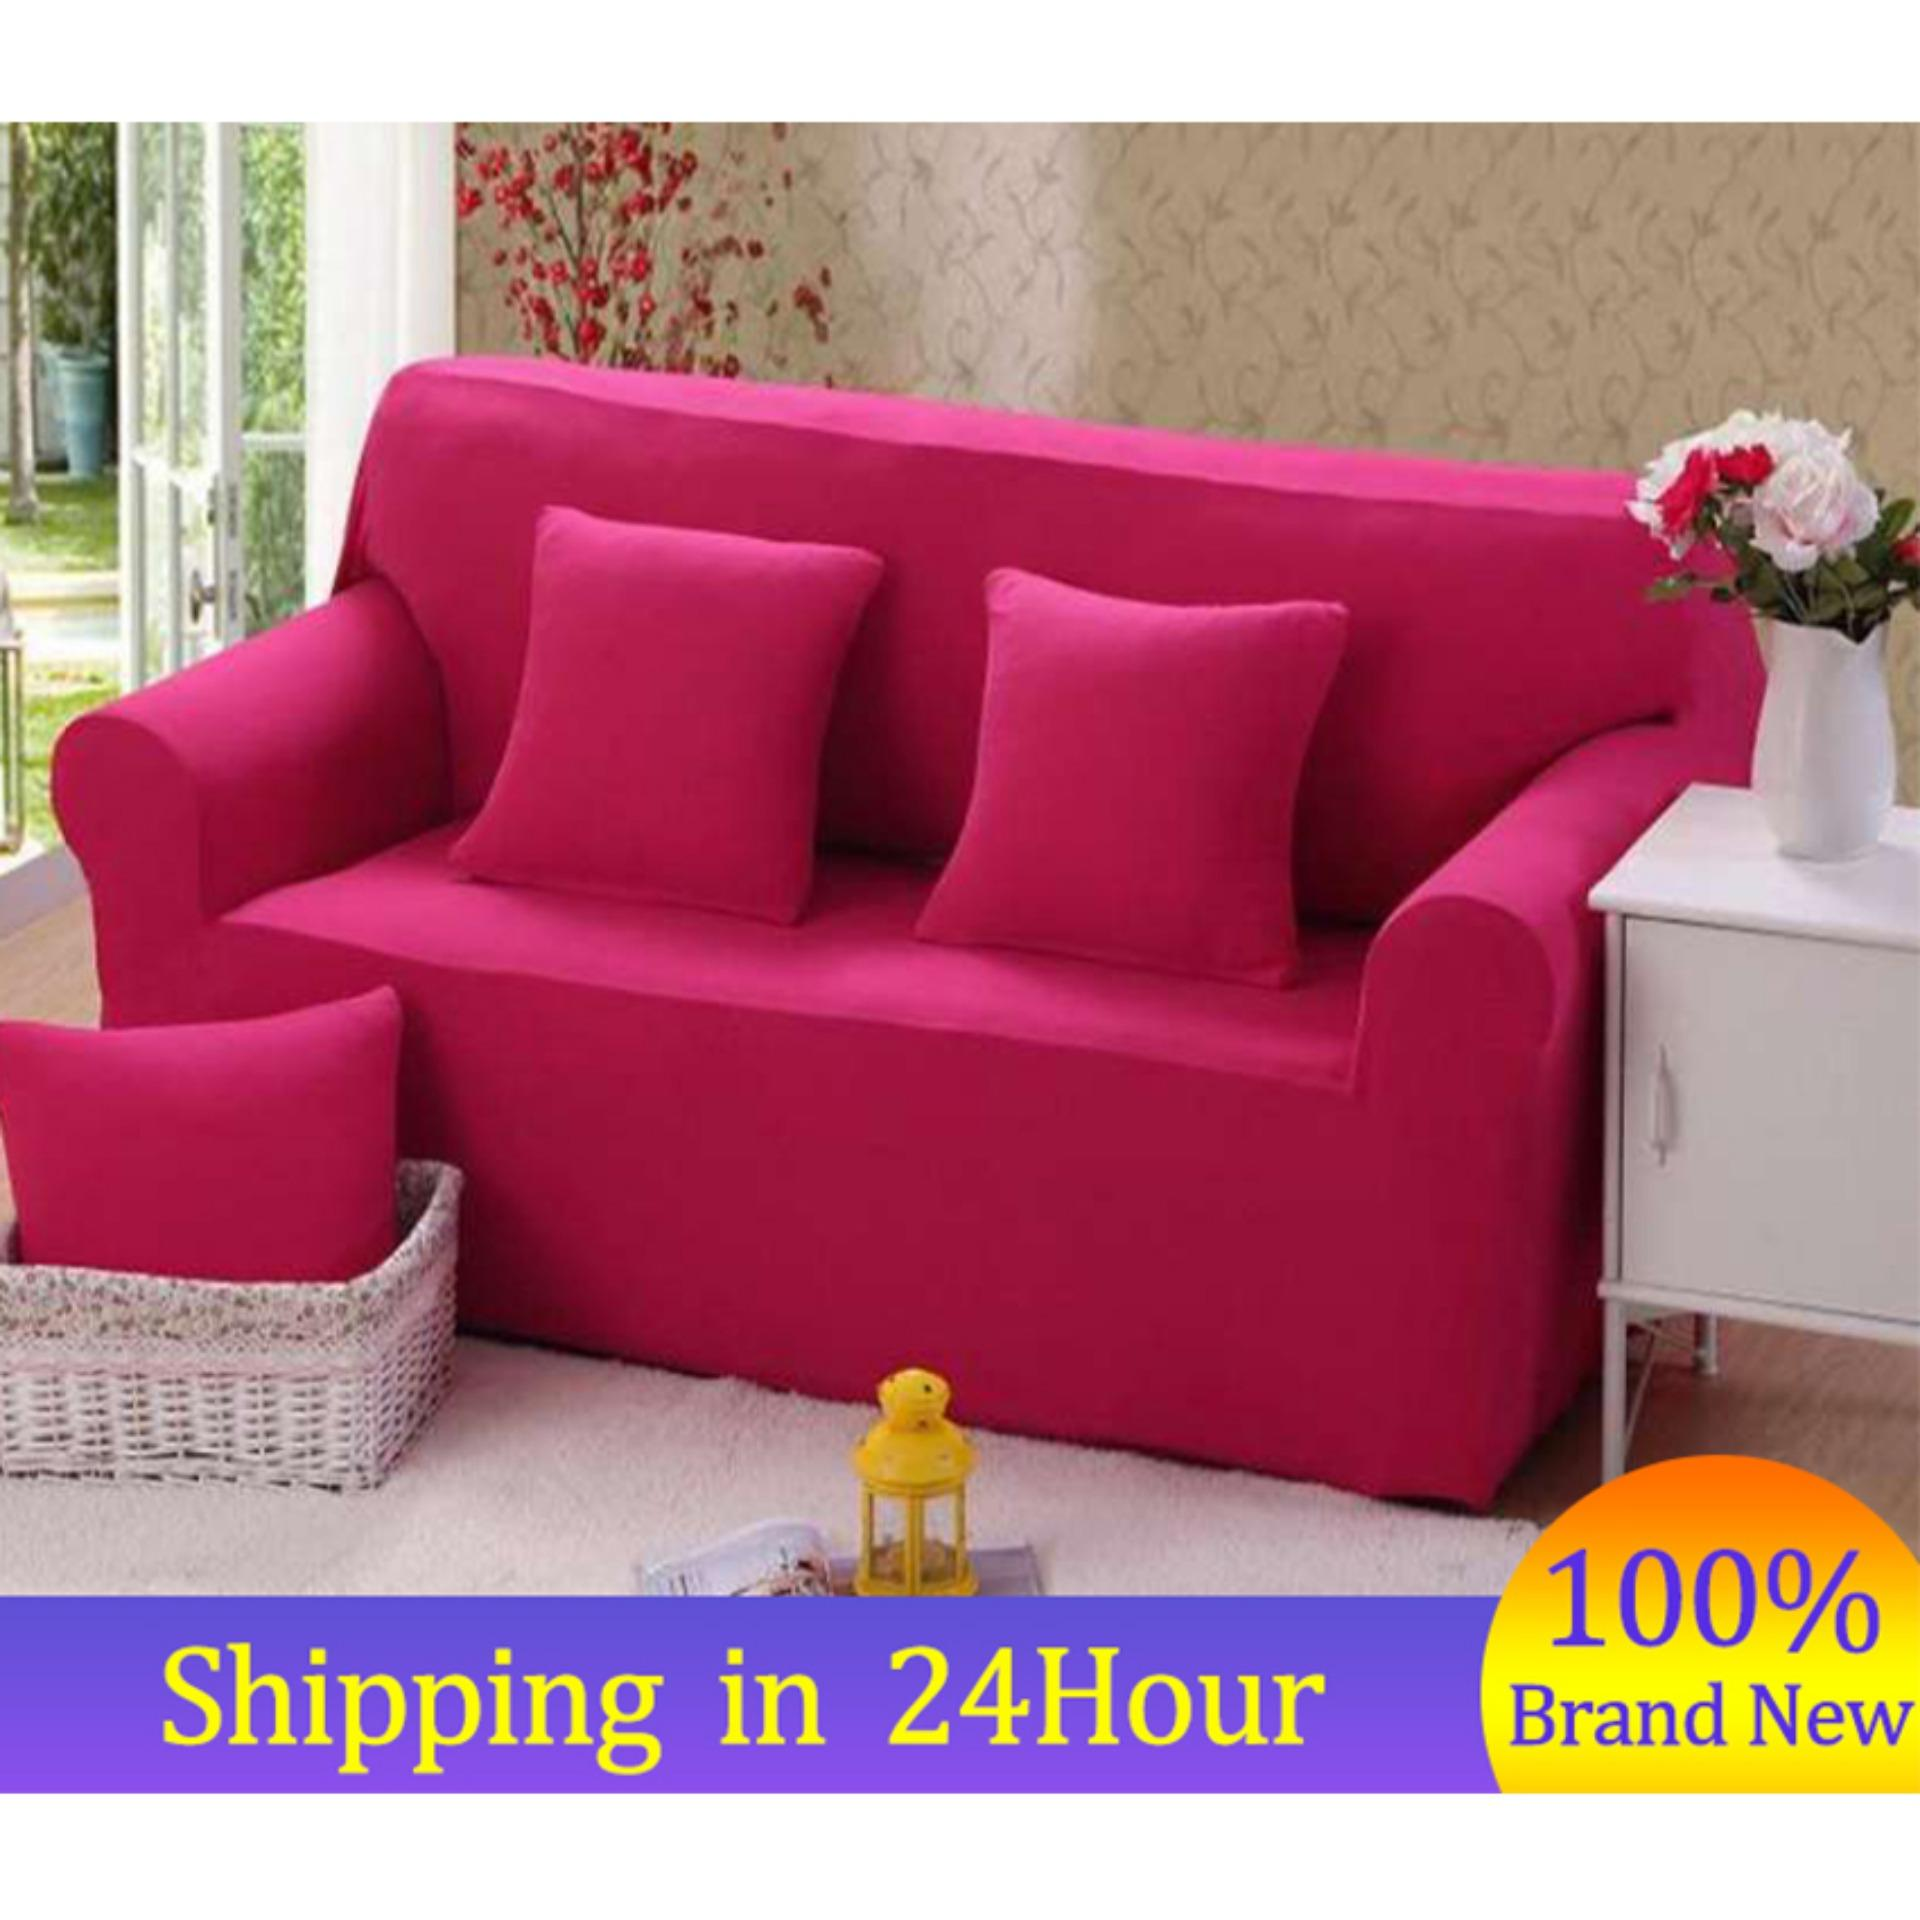 Sofa Bed For Sale Tarlac Original Price 1299send Gift3 Seater Cover7 Solid Colors Household Stretch Elastic Sofa Couch Protective Slipcover Hot Sale In